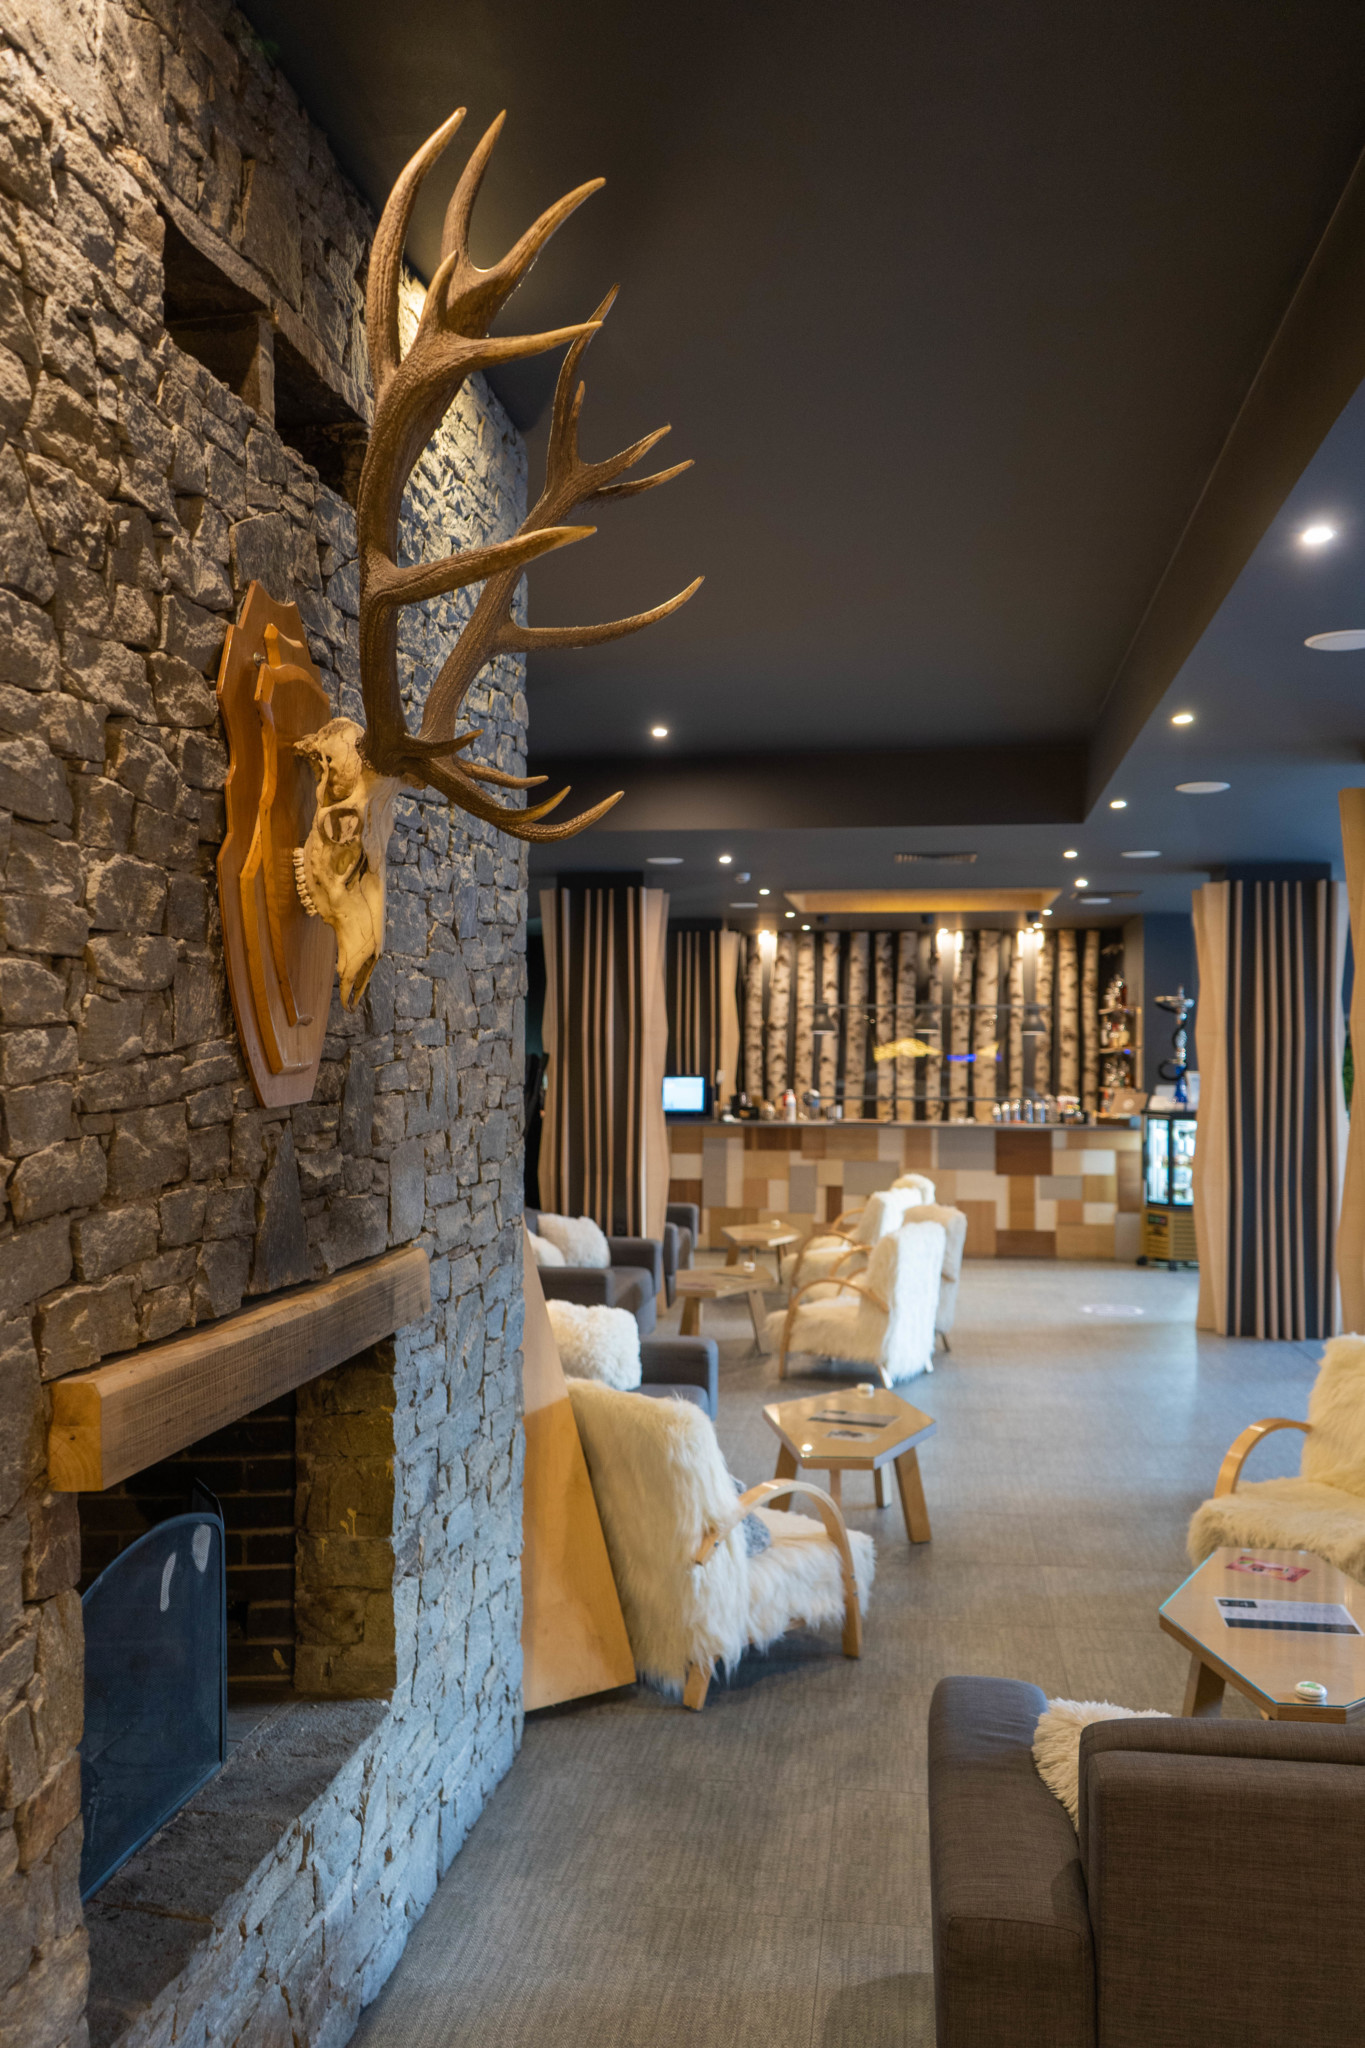 Spa Hotel Arte in Velingrad